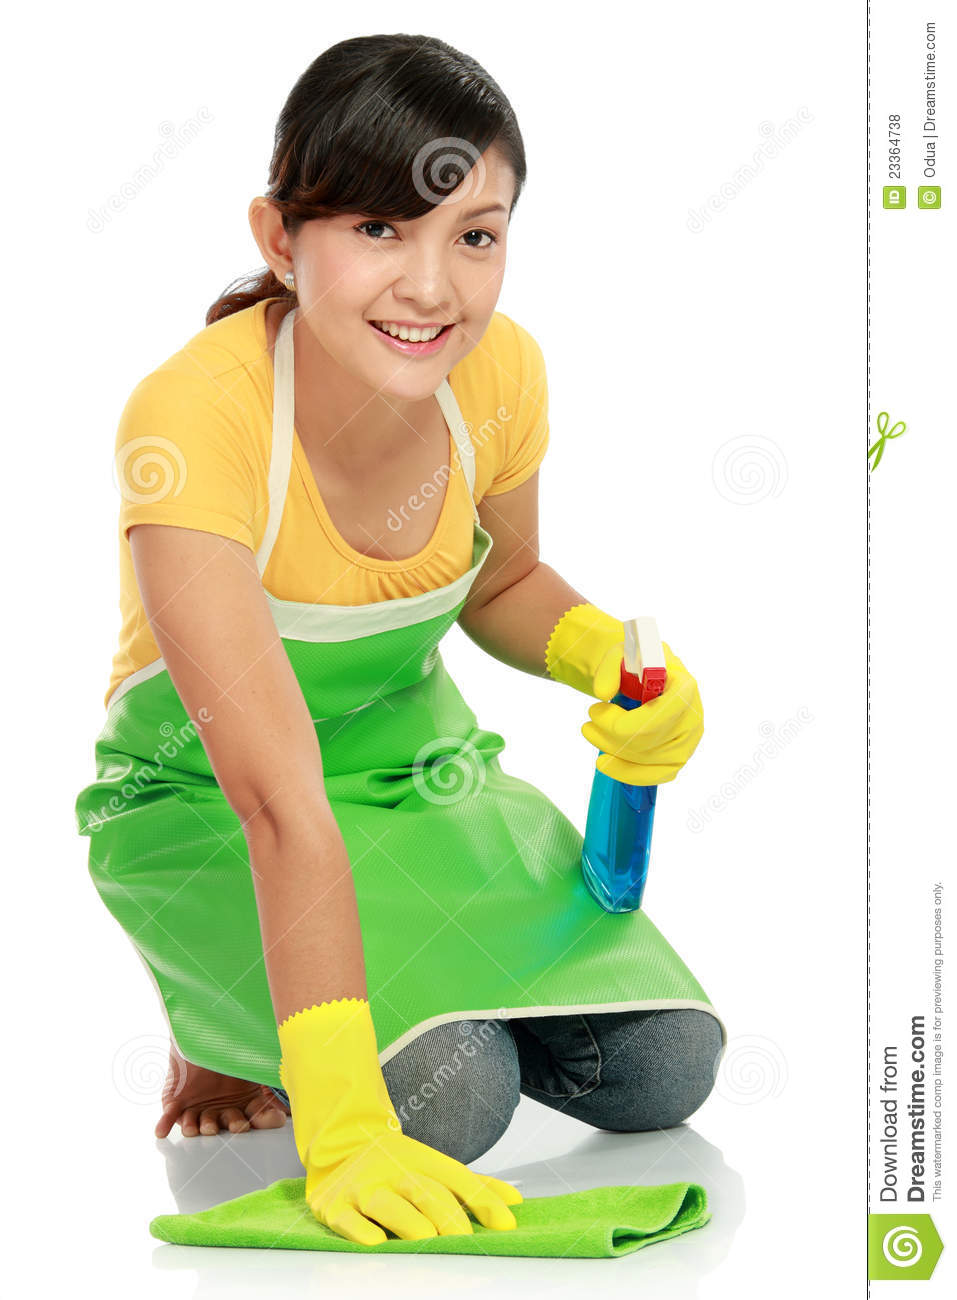 Royalty Free Stock Photos Woman Cleaning Floor Image23364738 on Massage Room Floor Plans